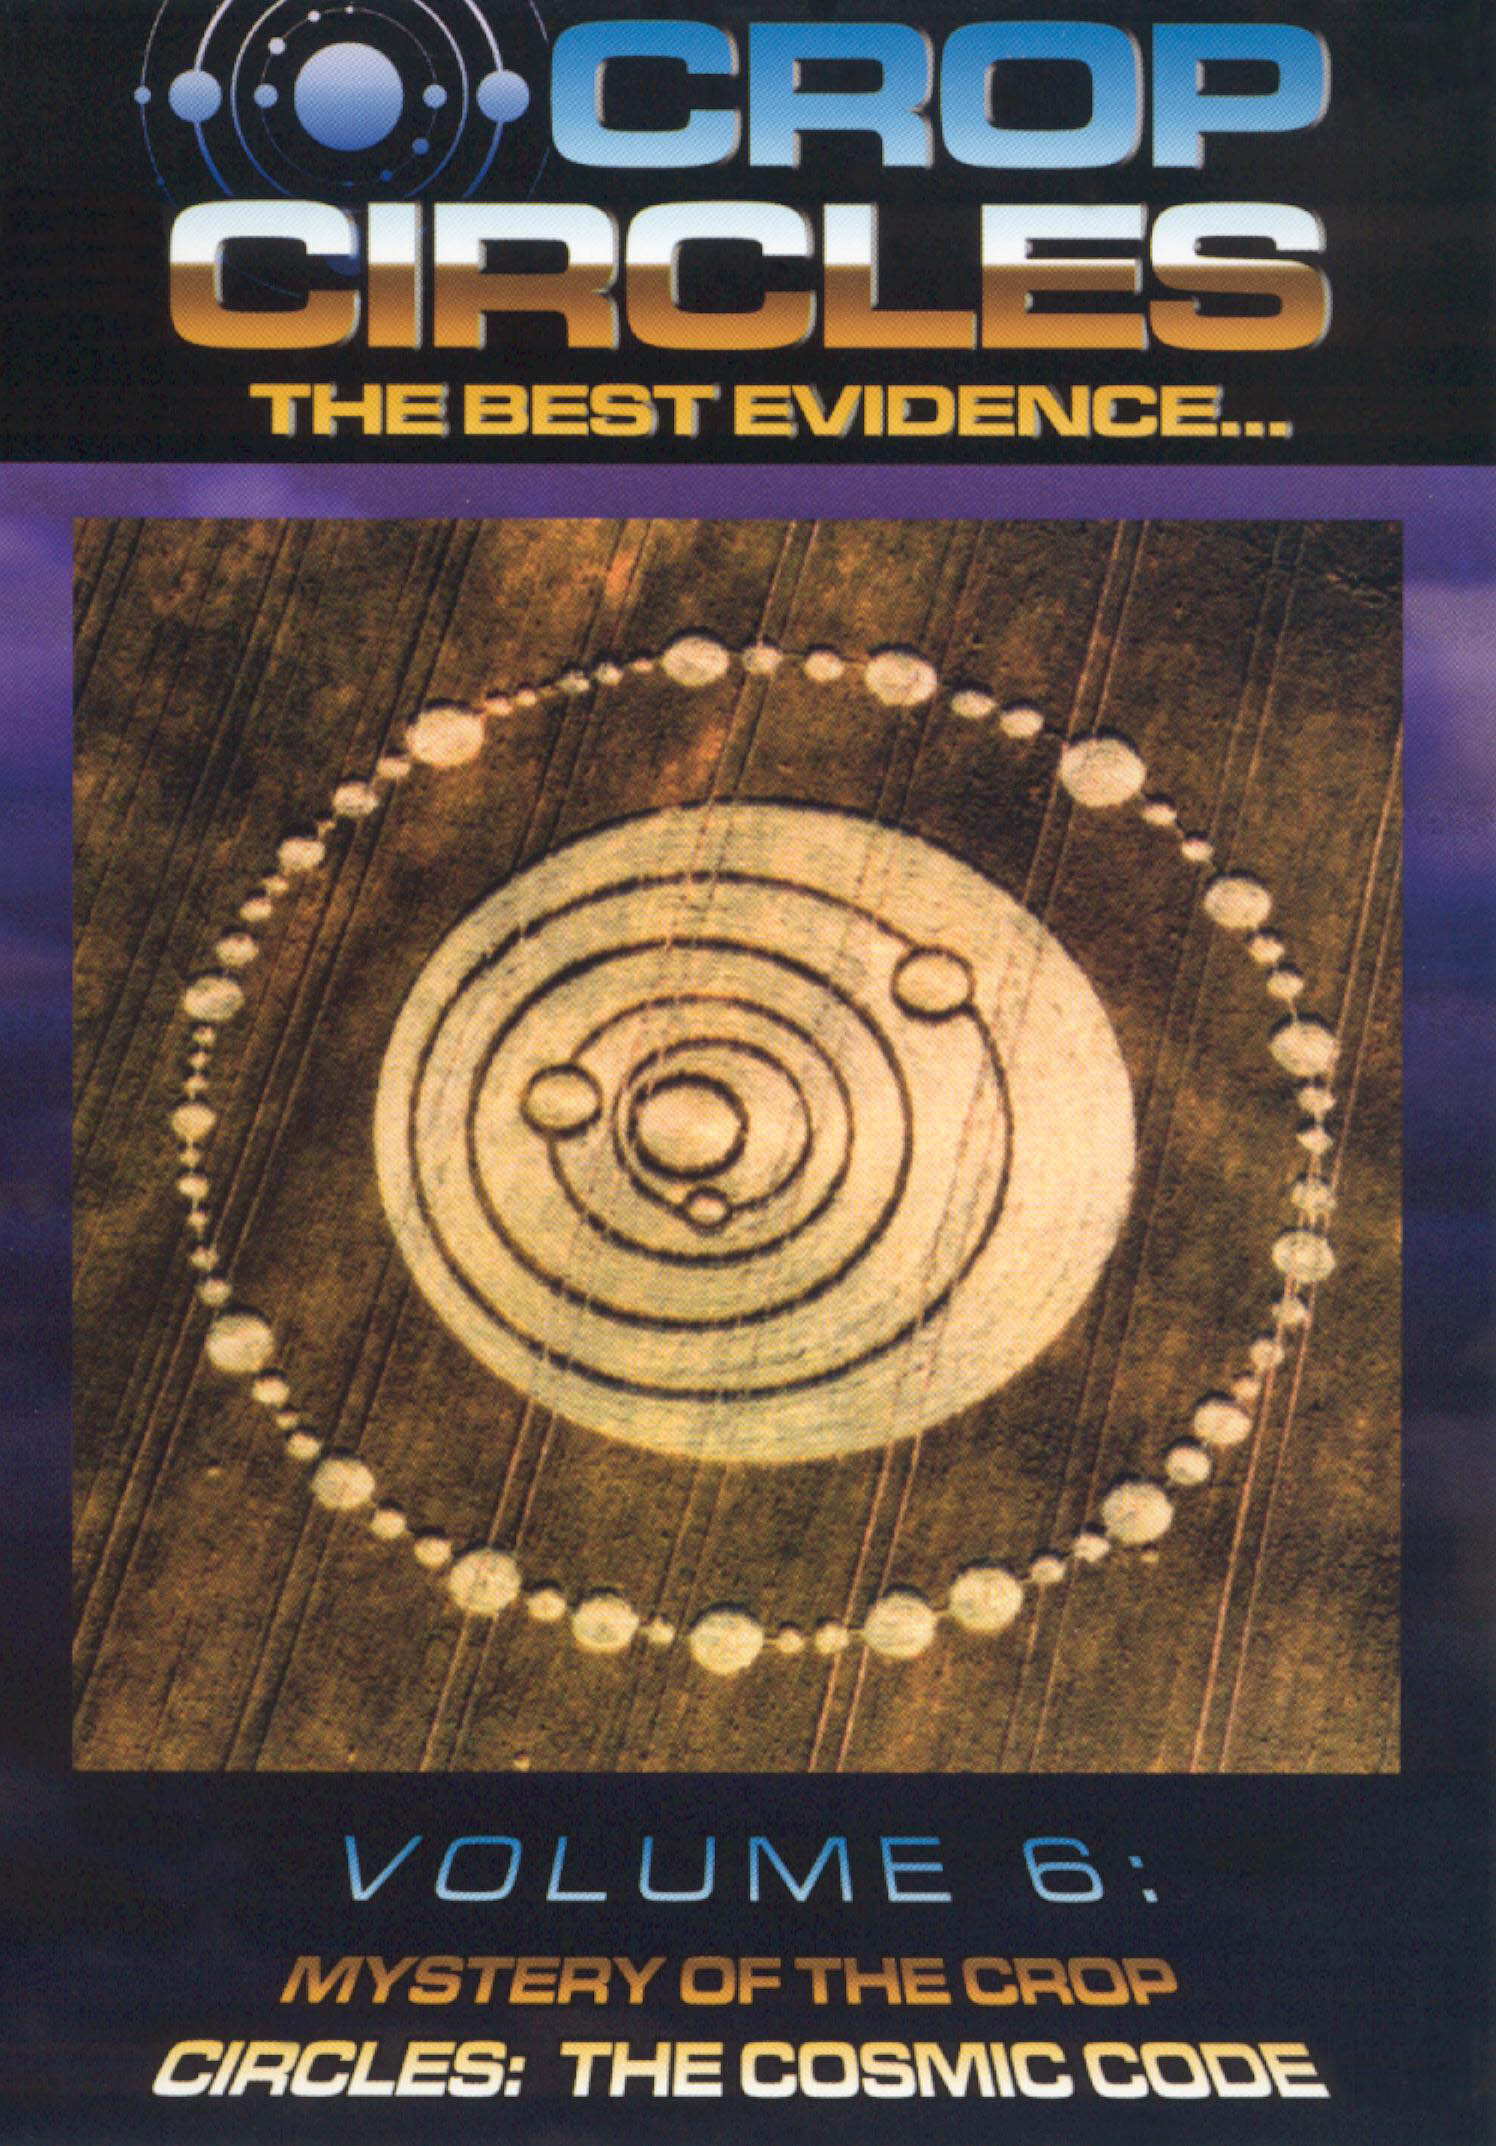 Crop Circles: The Best Evidence, Vol. 6 - Mystery of the Crop Circles - The Cosmic Code